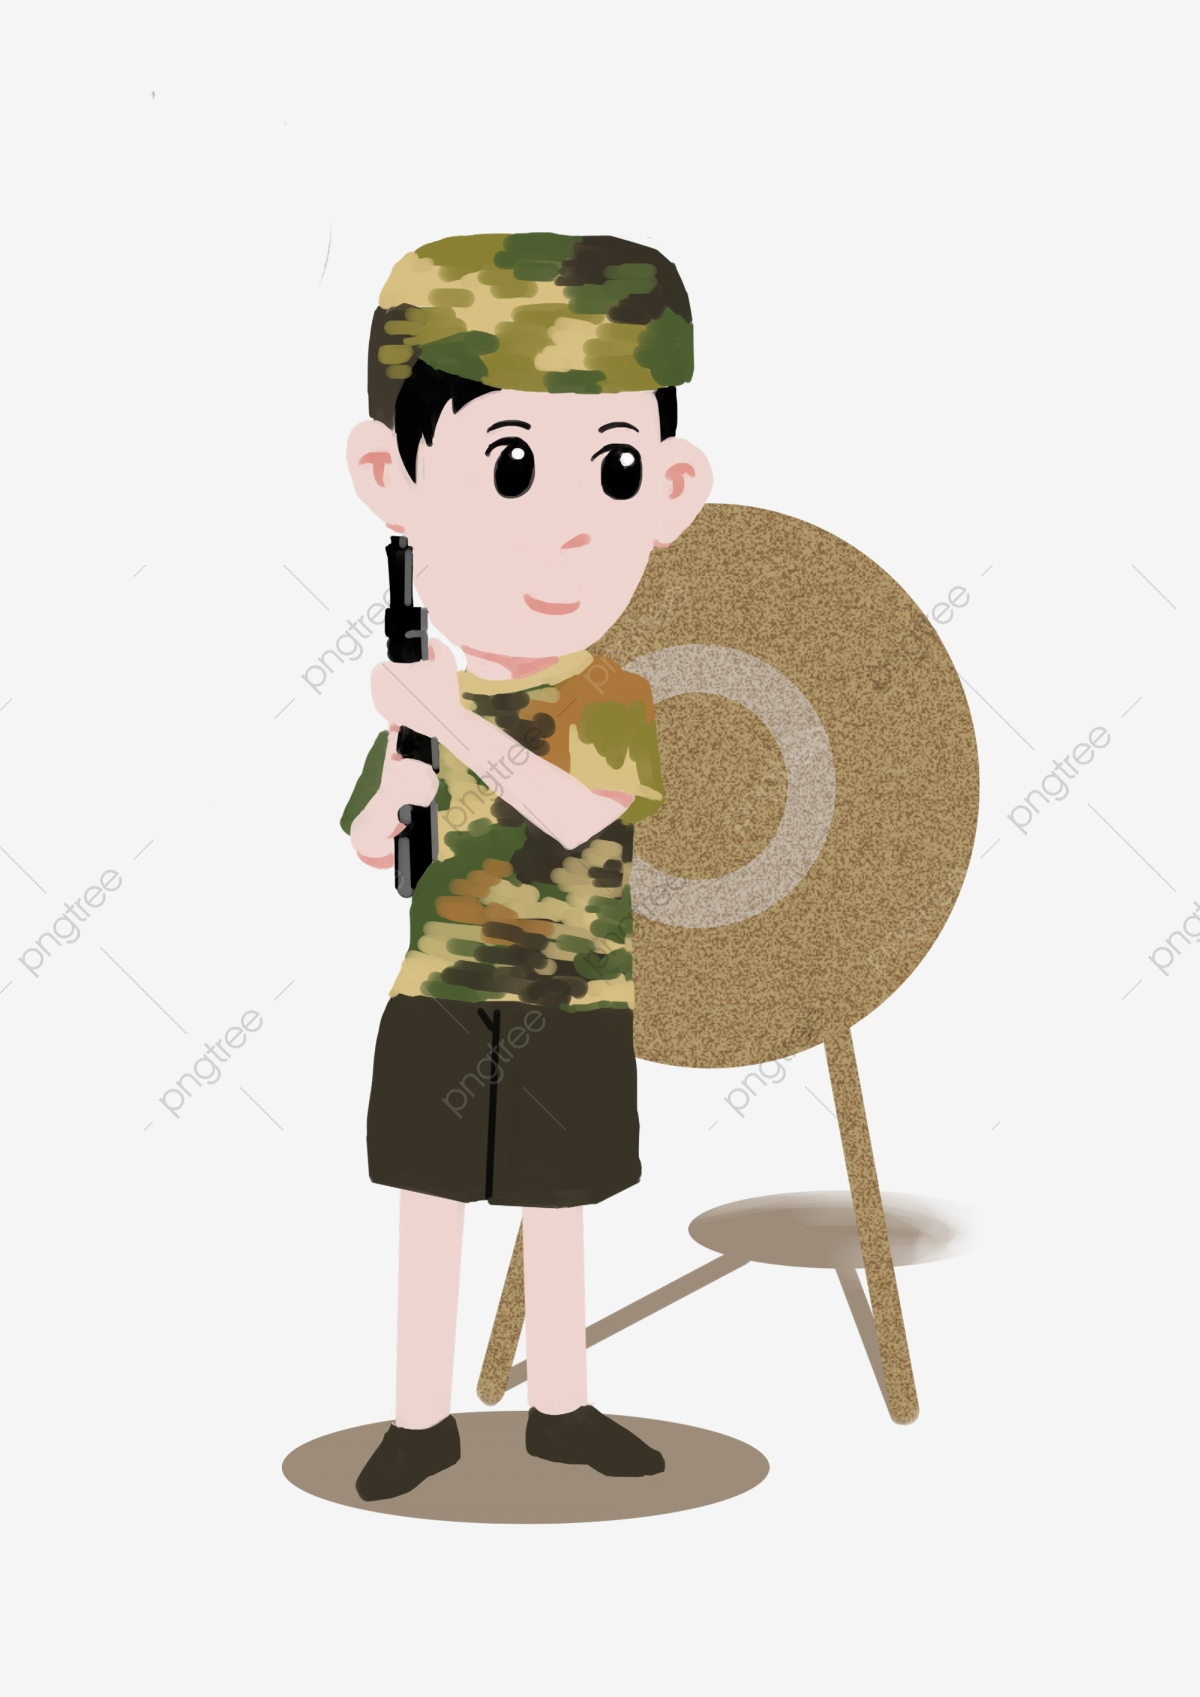 Free Vintage Military Cliparts, Download Free Clip Art, Free Clip Art on  Clipart Library